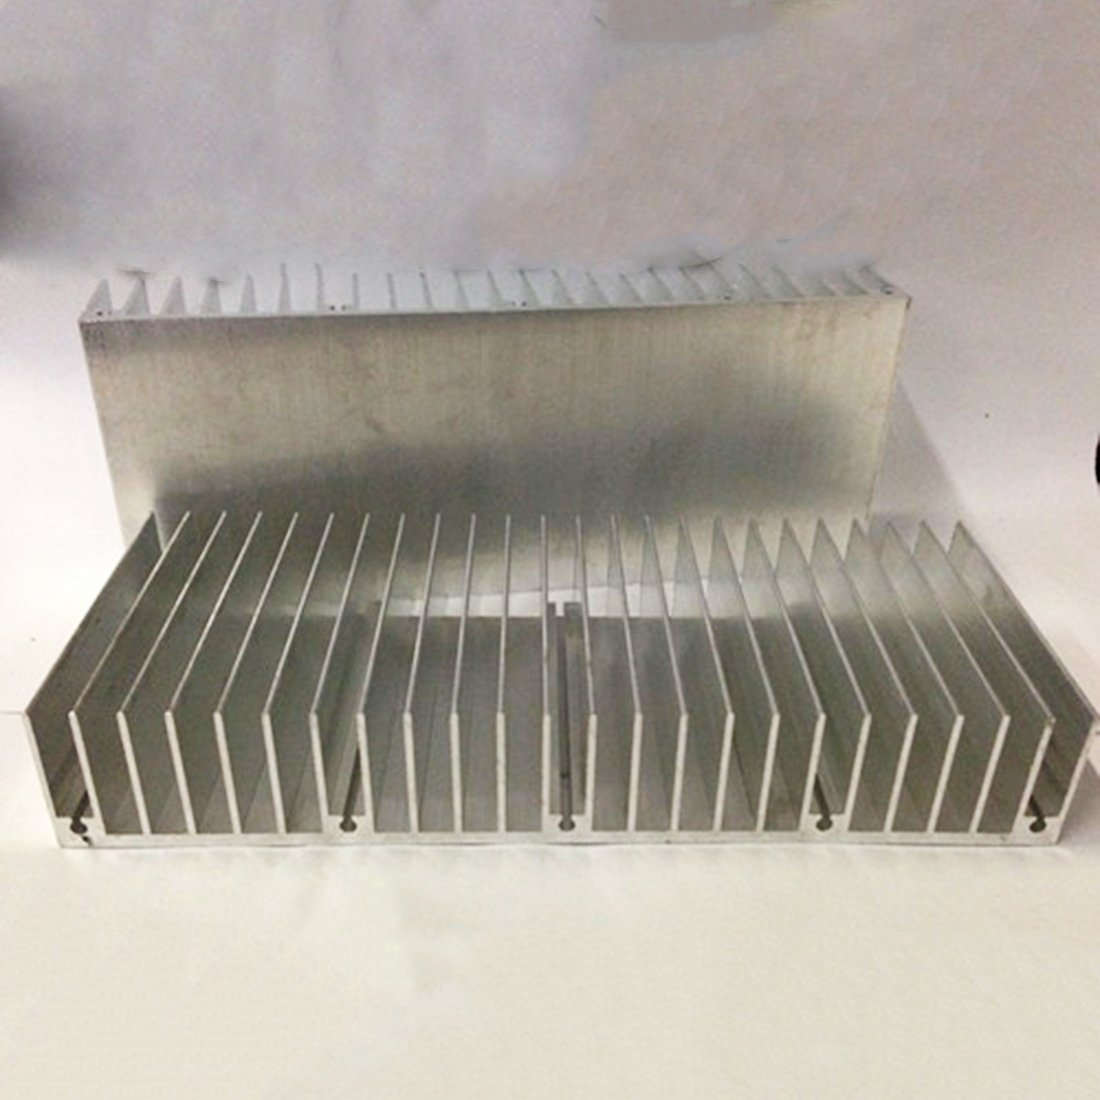 uxcell Aluminum Heatsink Cooling Fin 150mmx60mmx25mm for Power Amplifier by uxcell (Image #5)